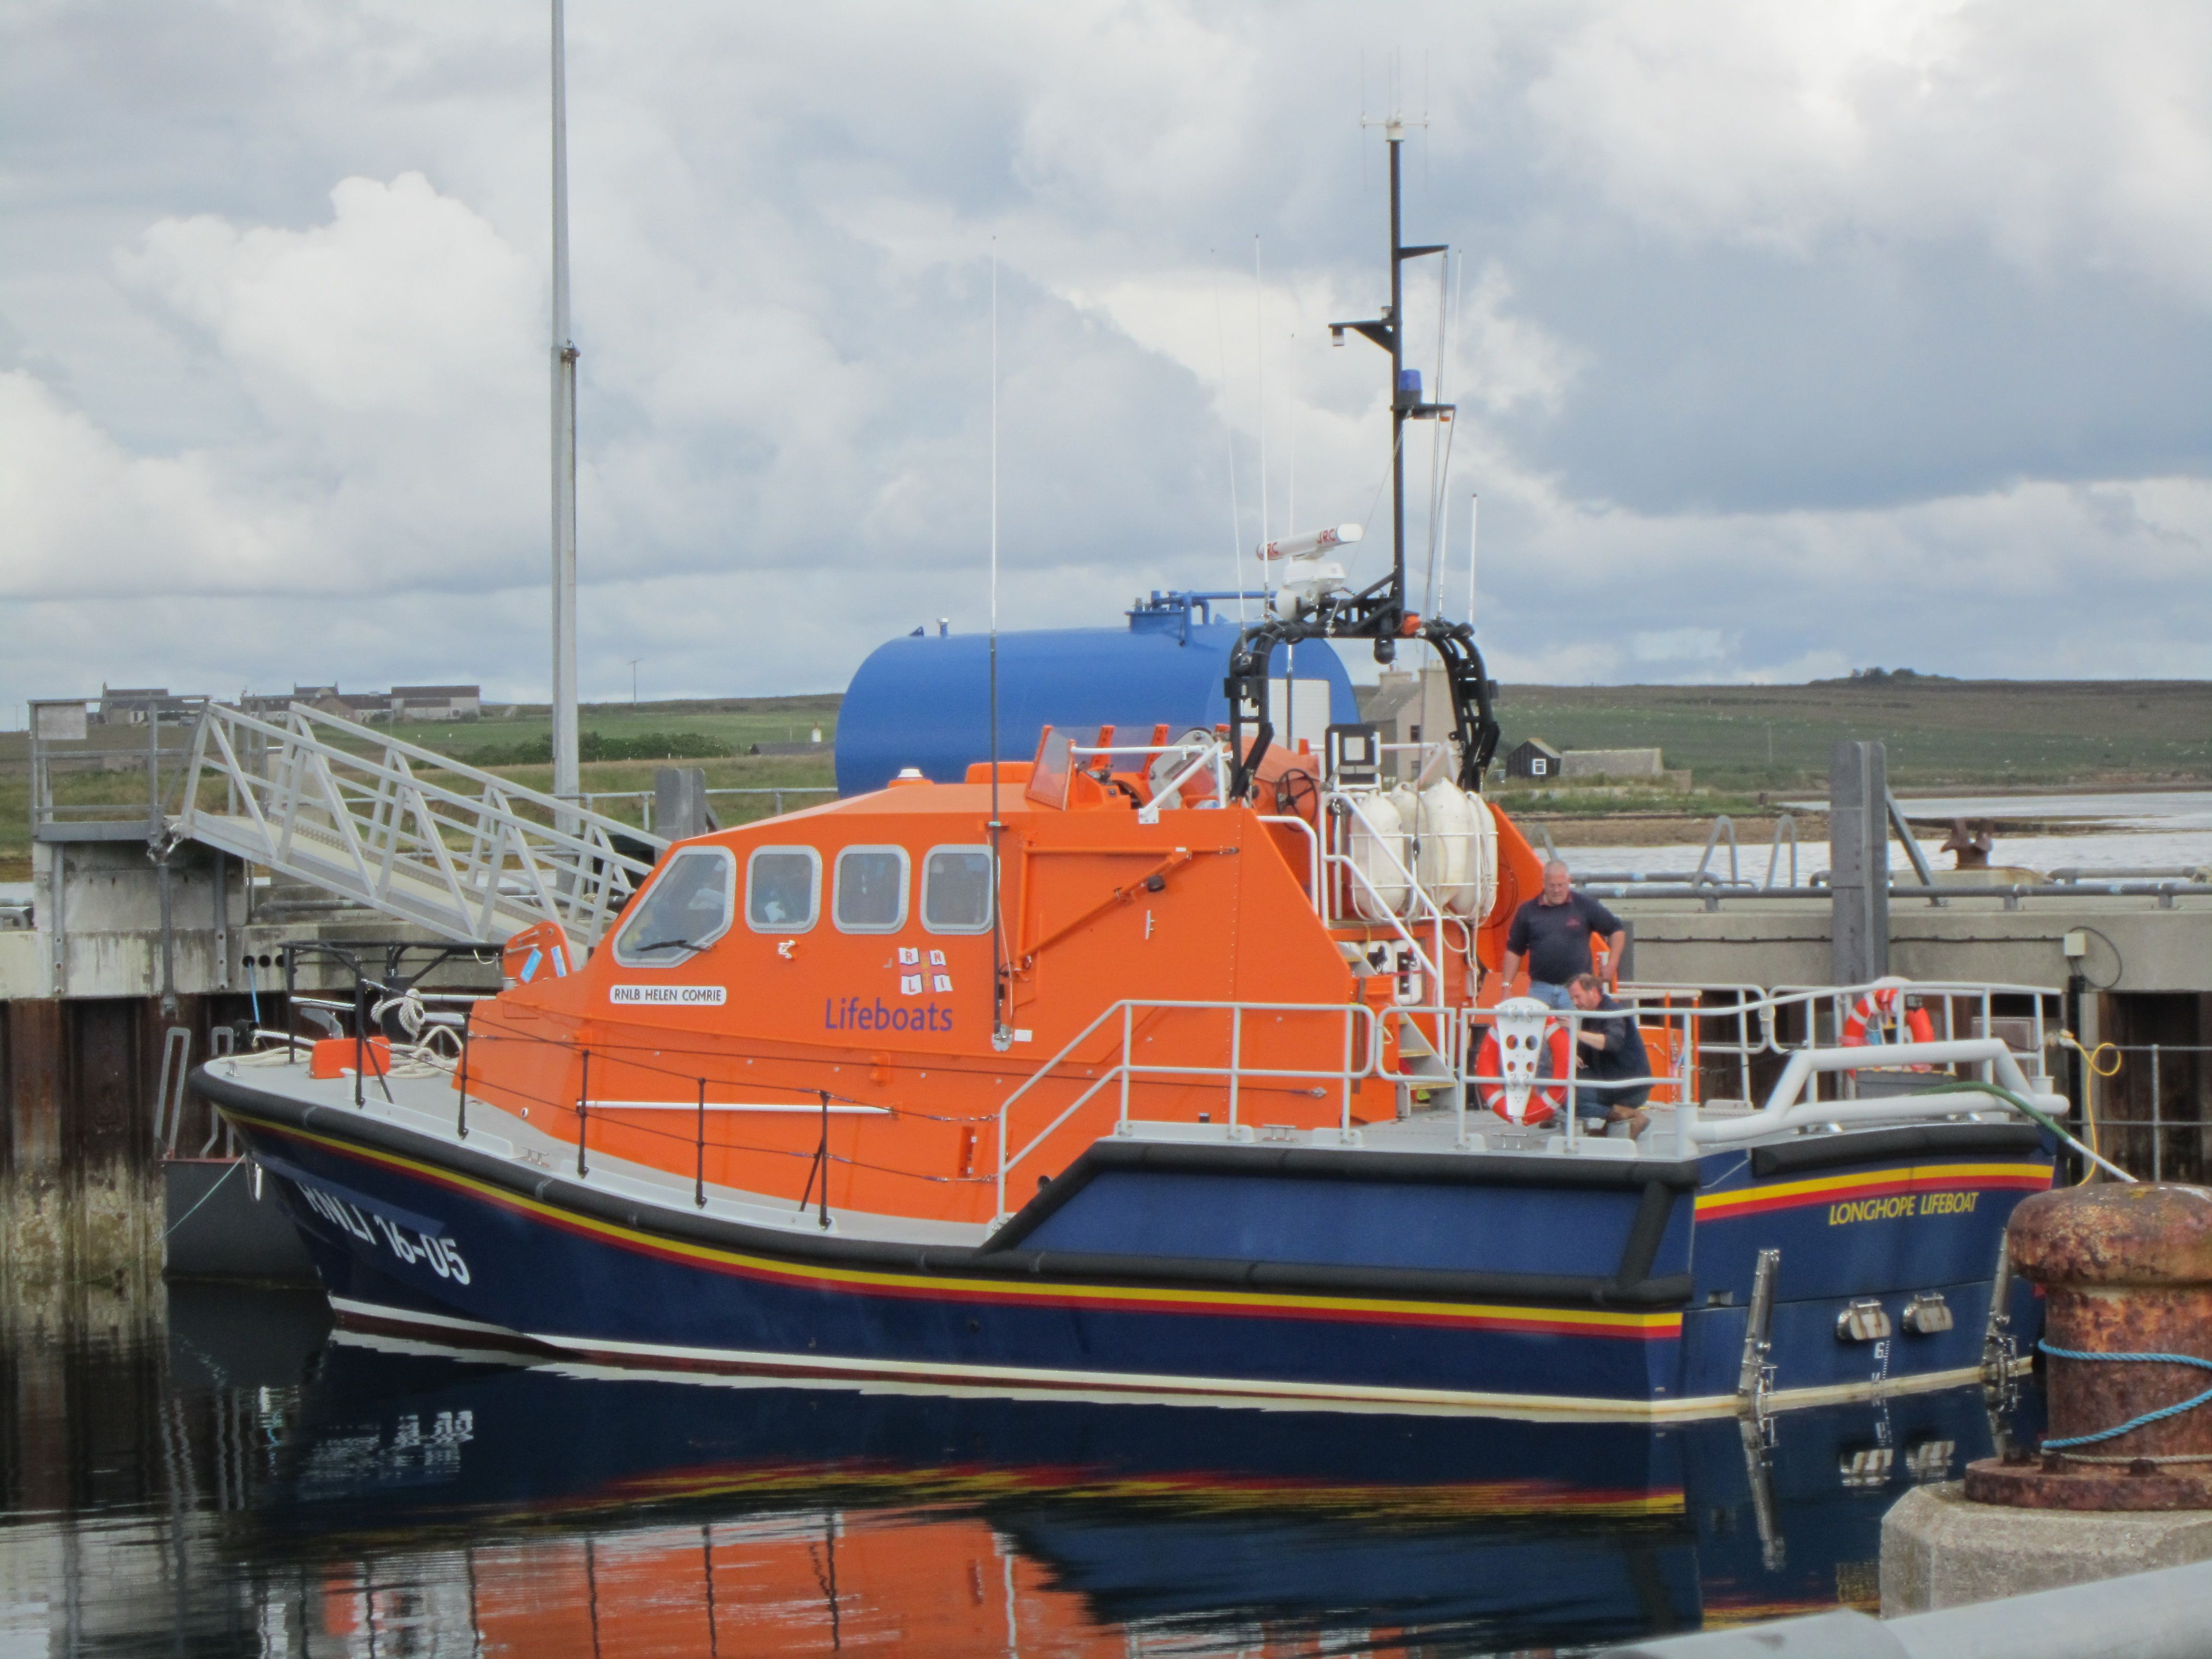 Volunteering is recommended to help build and boost your CV. Meeting a lifeboat crewman brought that into perspective